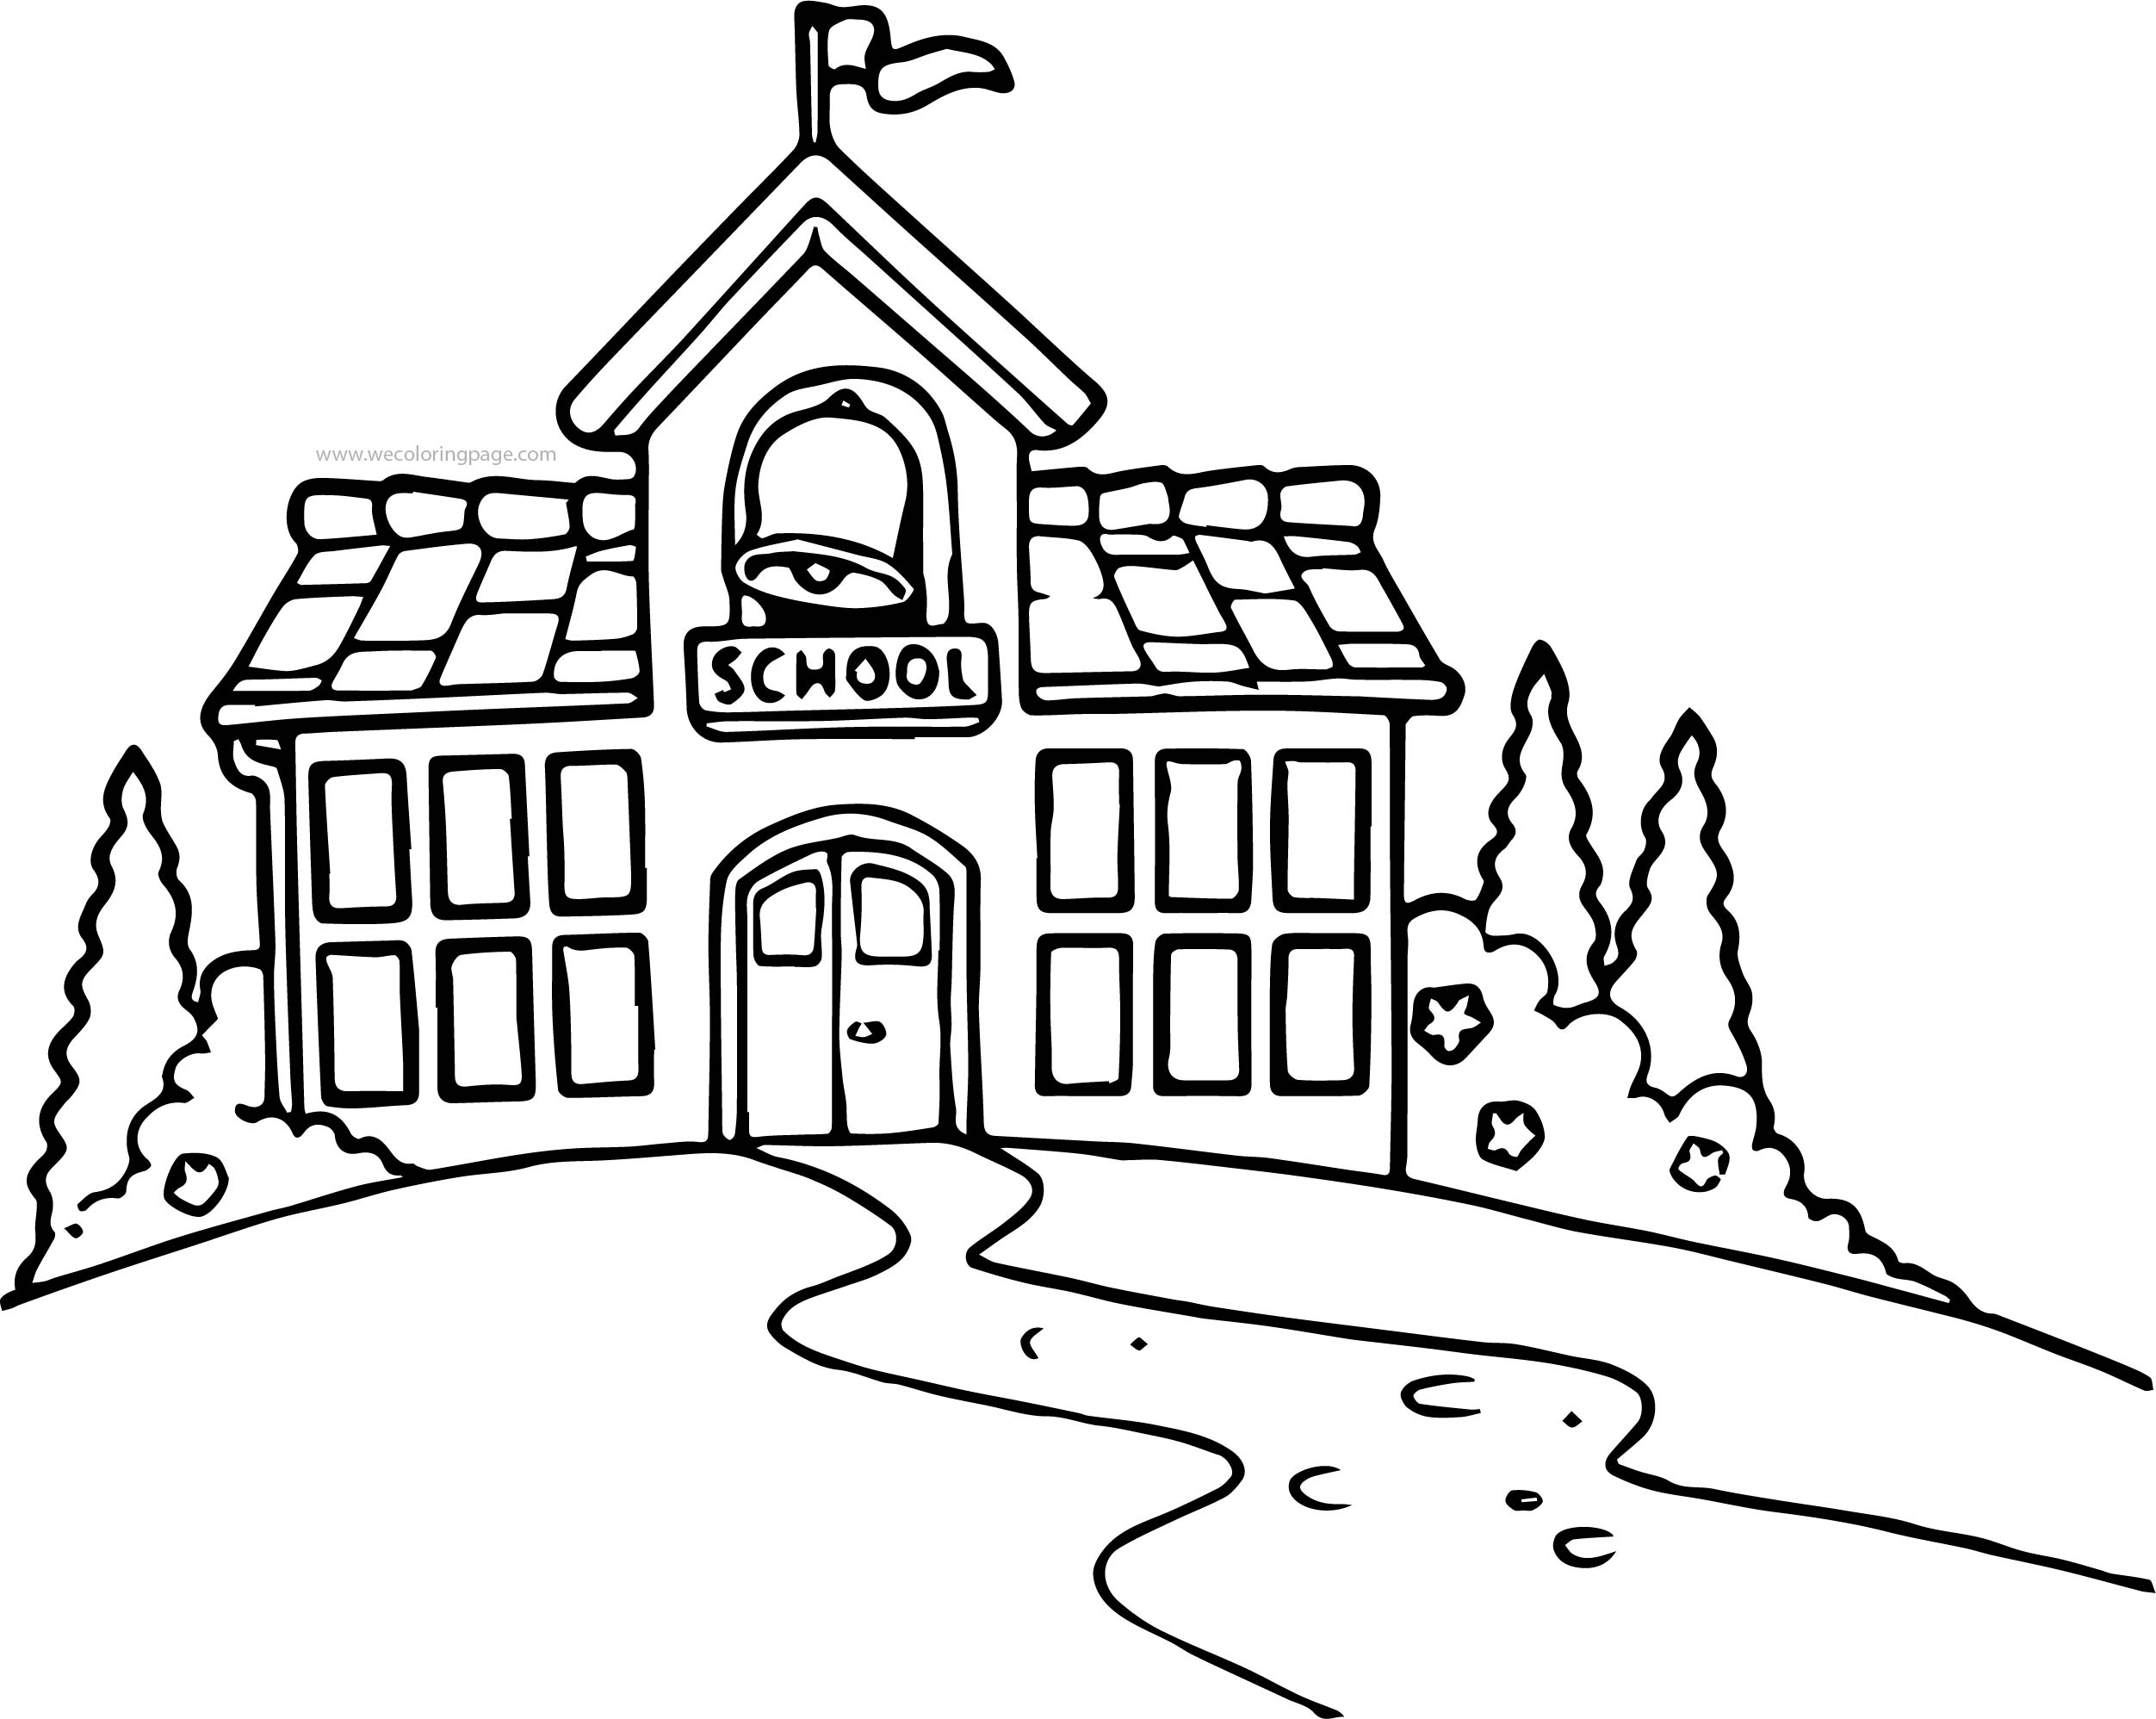 School Building Black And White School Building Coloring